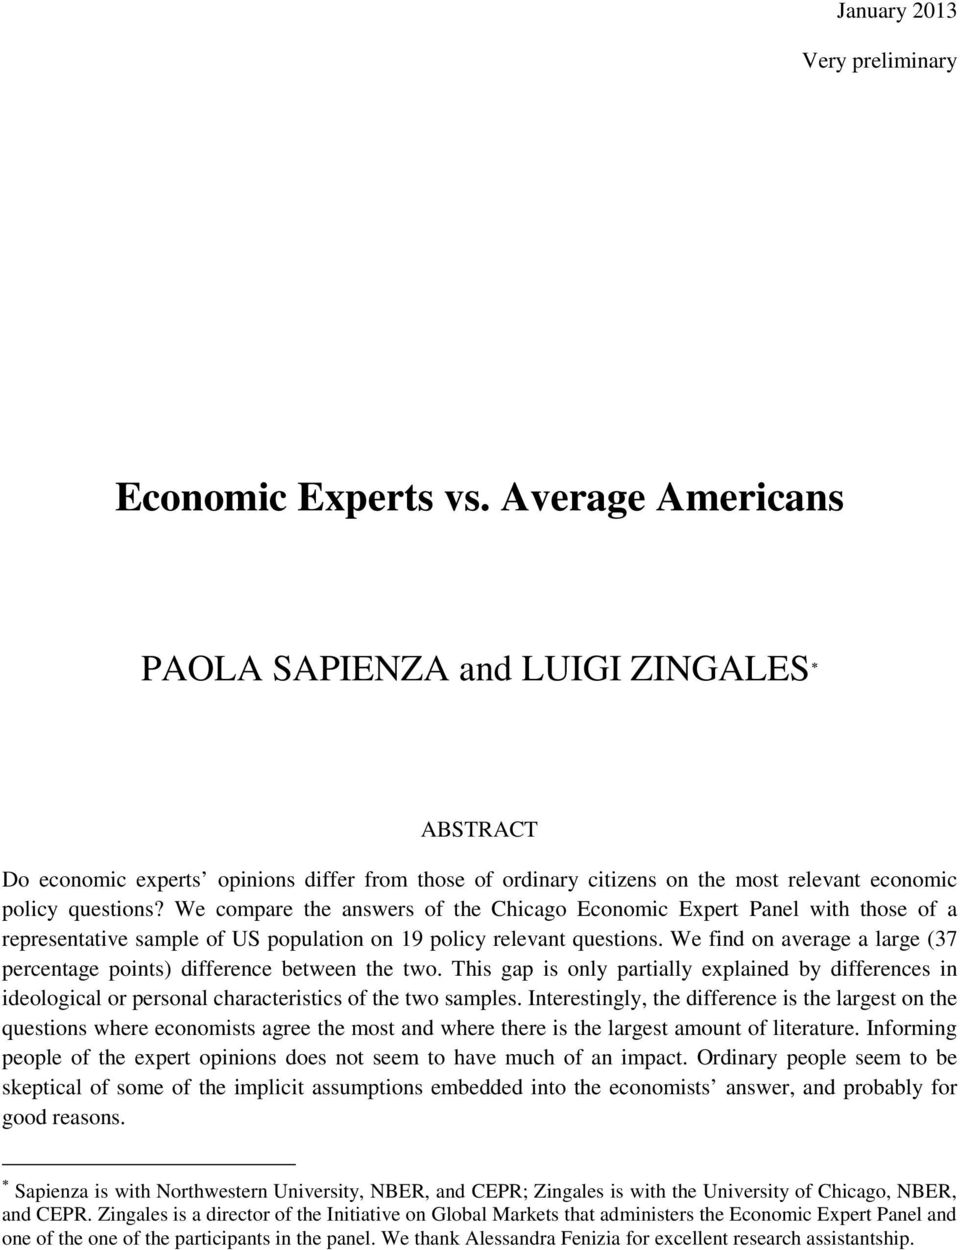 We compare the answers of the Chicago Economic Expert Panel with those of a representative sample of US population on 19 policy relevant questions.